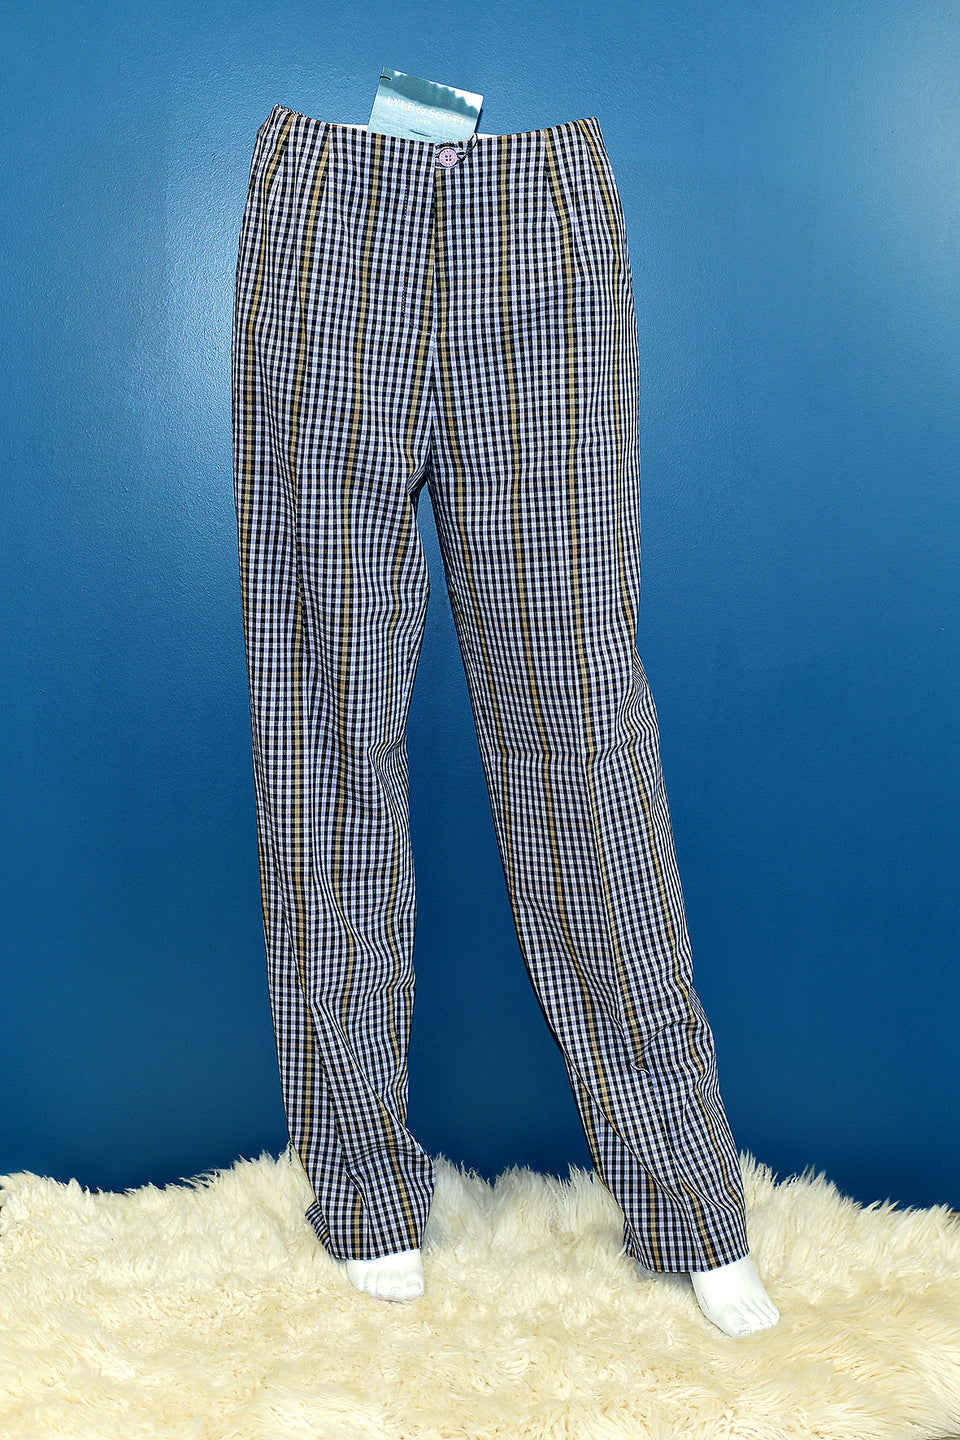 LYLE & SCOTT Women's Black and Lupin Check Golf Trousers, Size 12. New with tags.